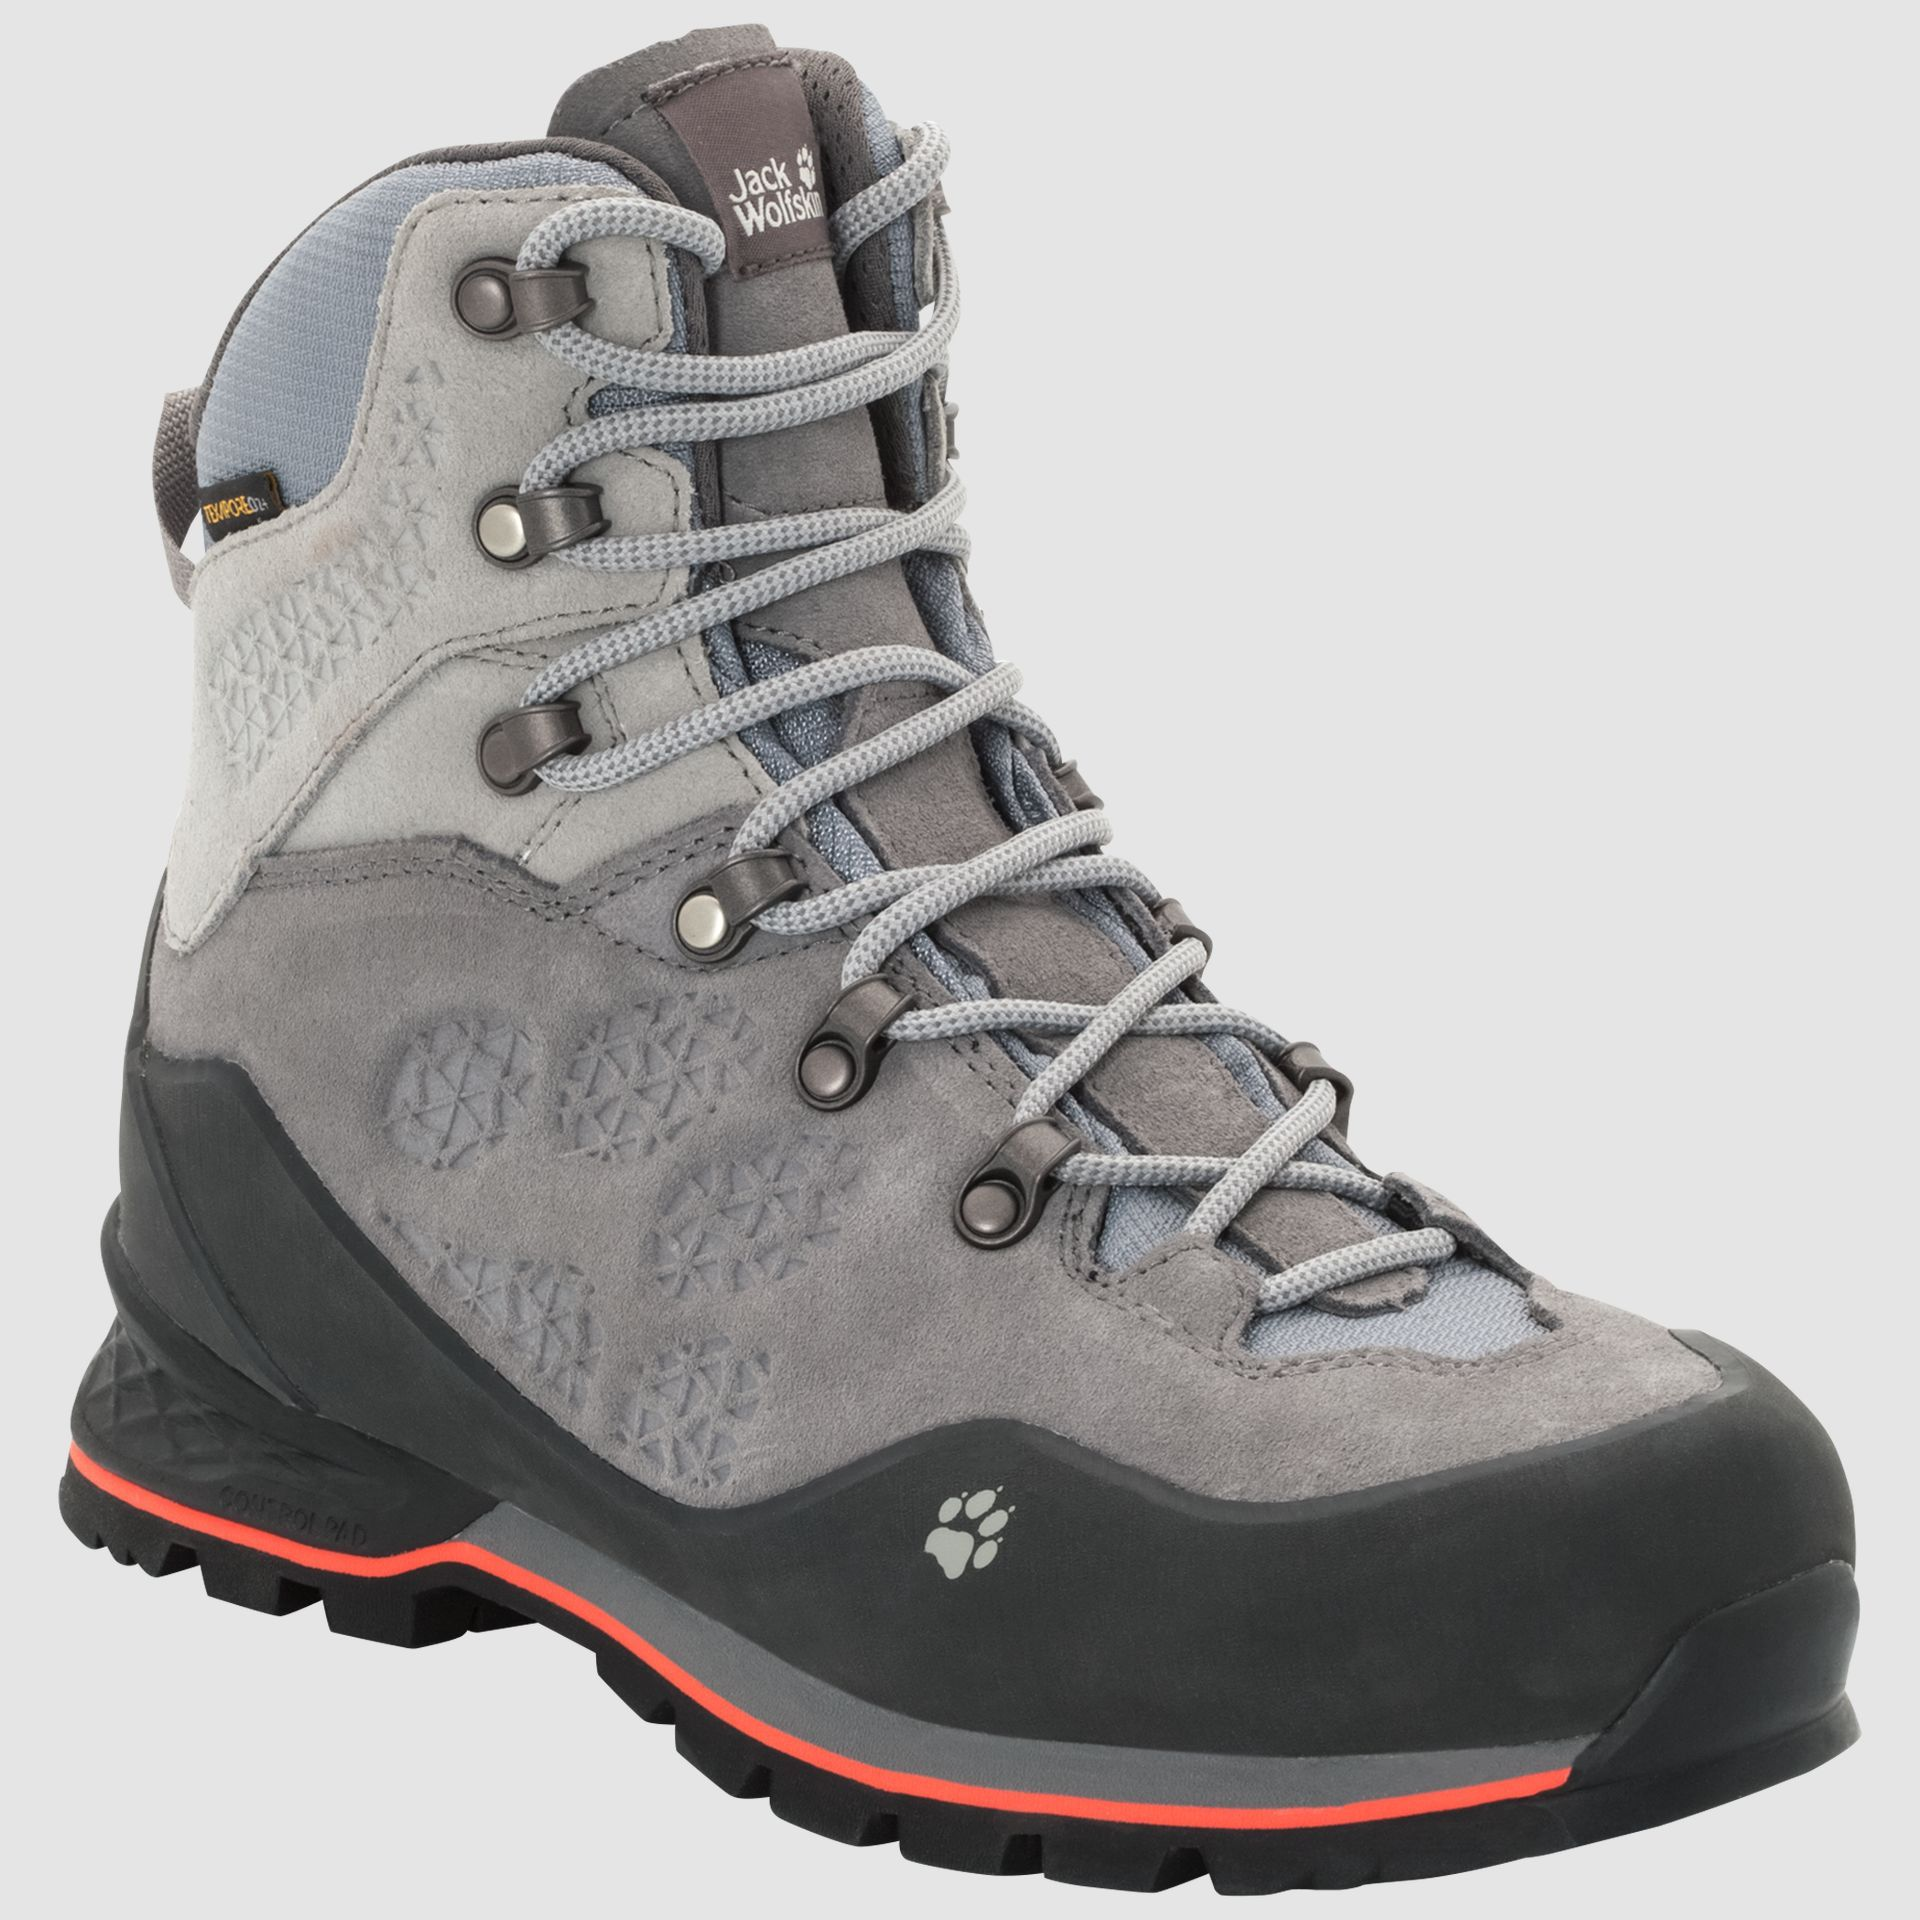 Jack Wolfskin WILDERNESS TEXAPORE MID W Wasserdichte Frauen